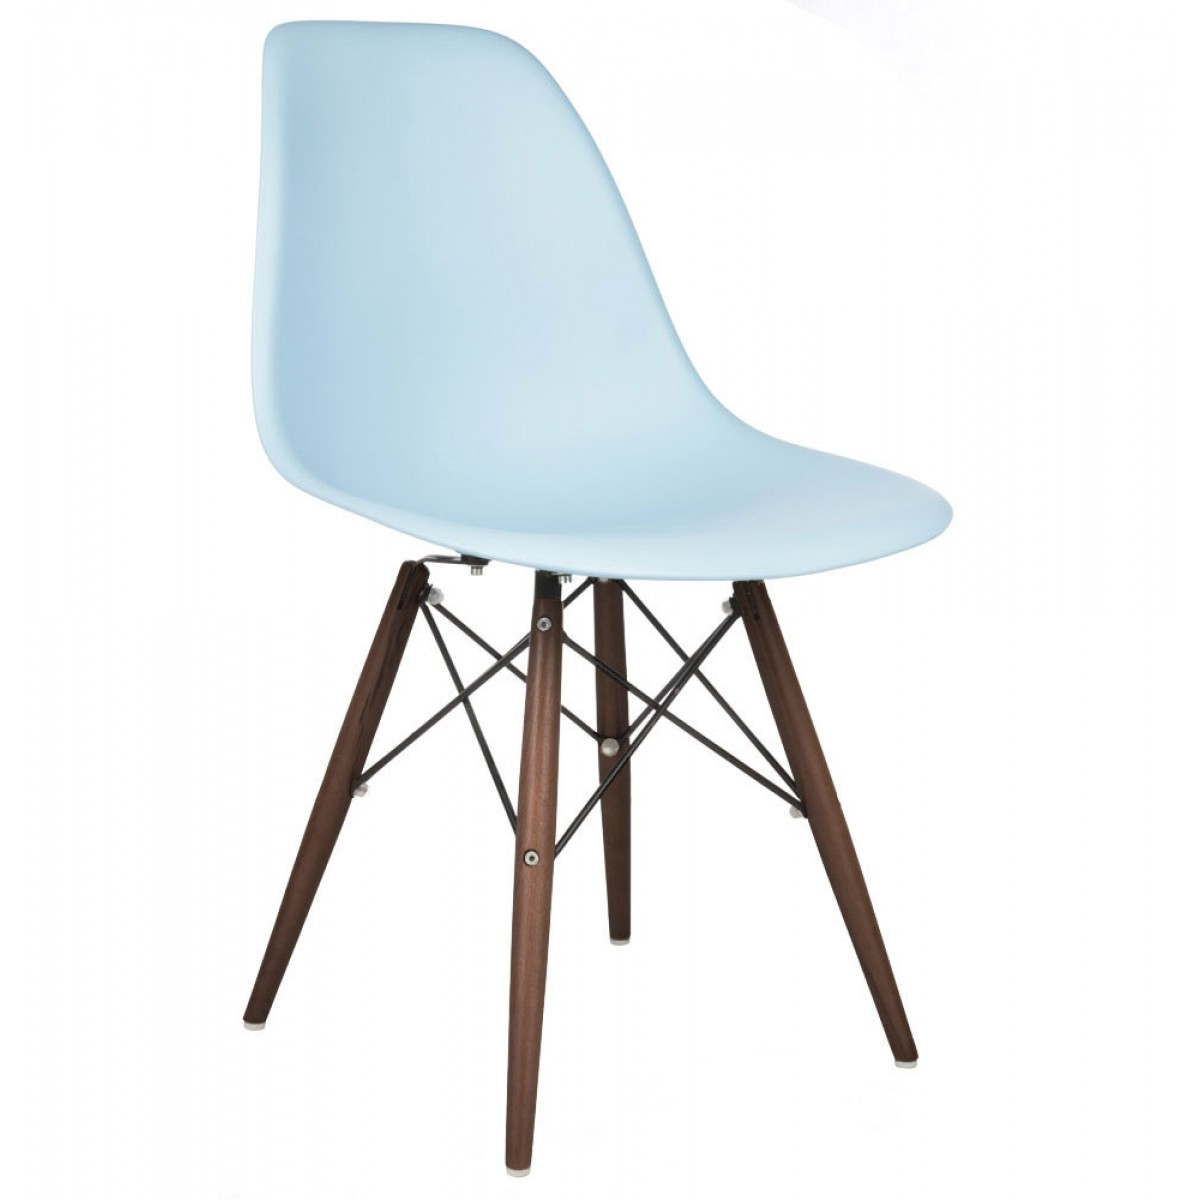 light wood dining chairs executive leather chair eames style dsw molded blue plastic shell